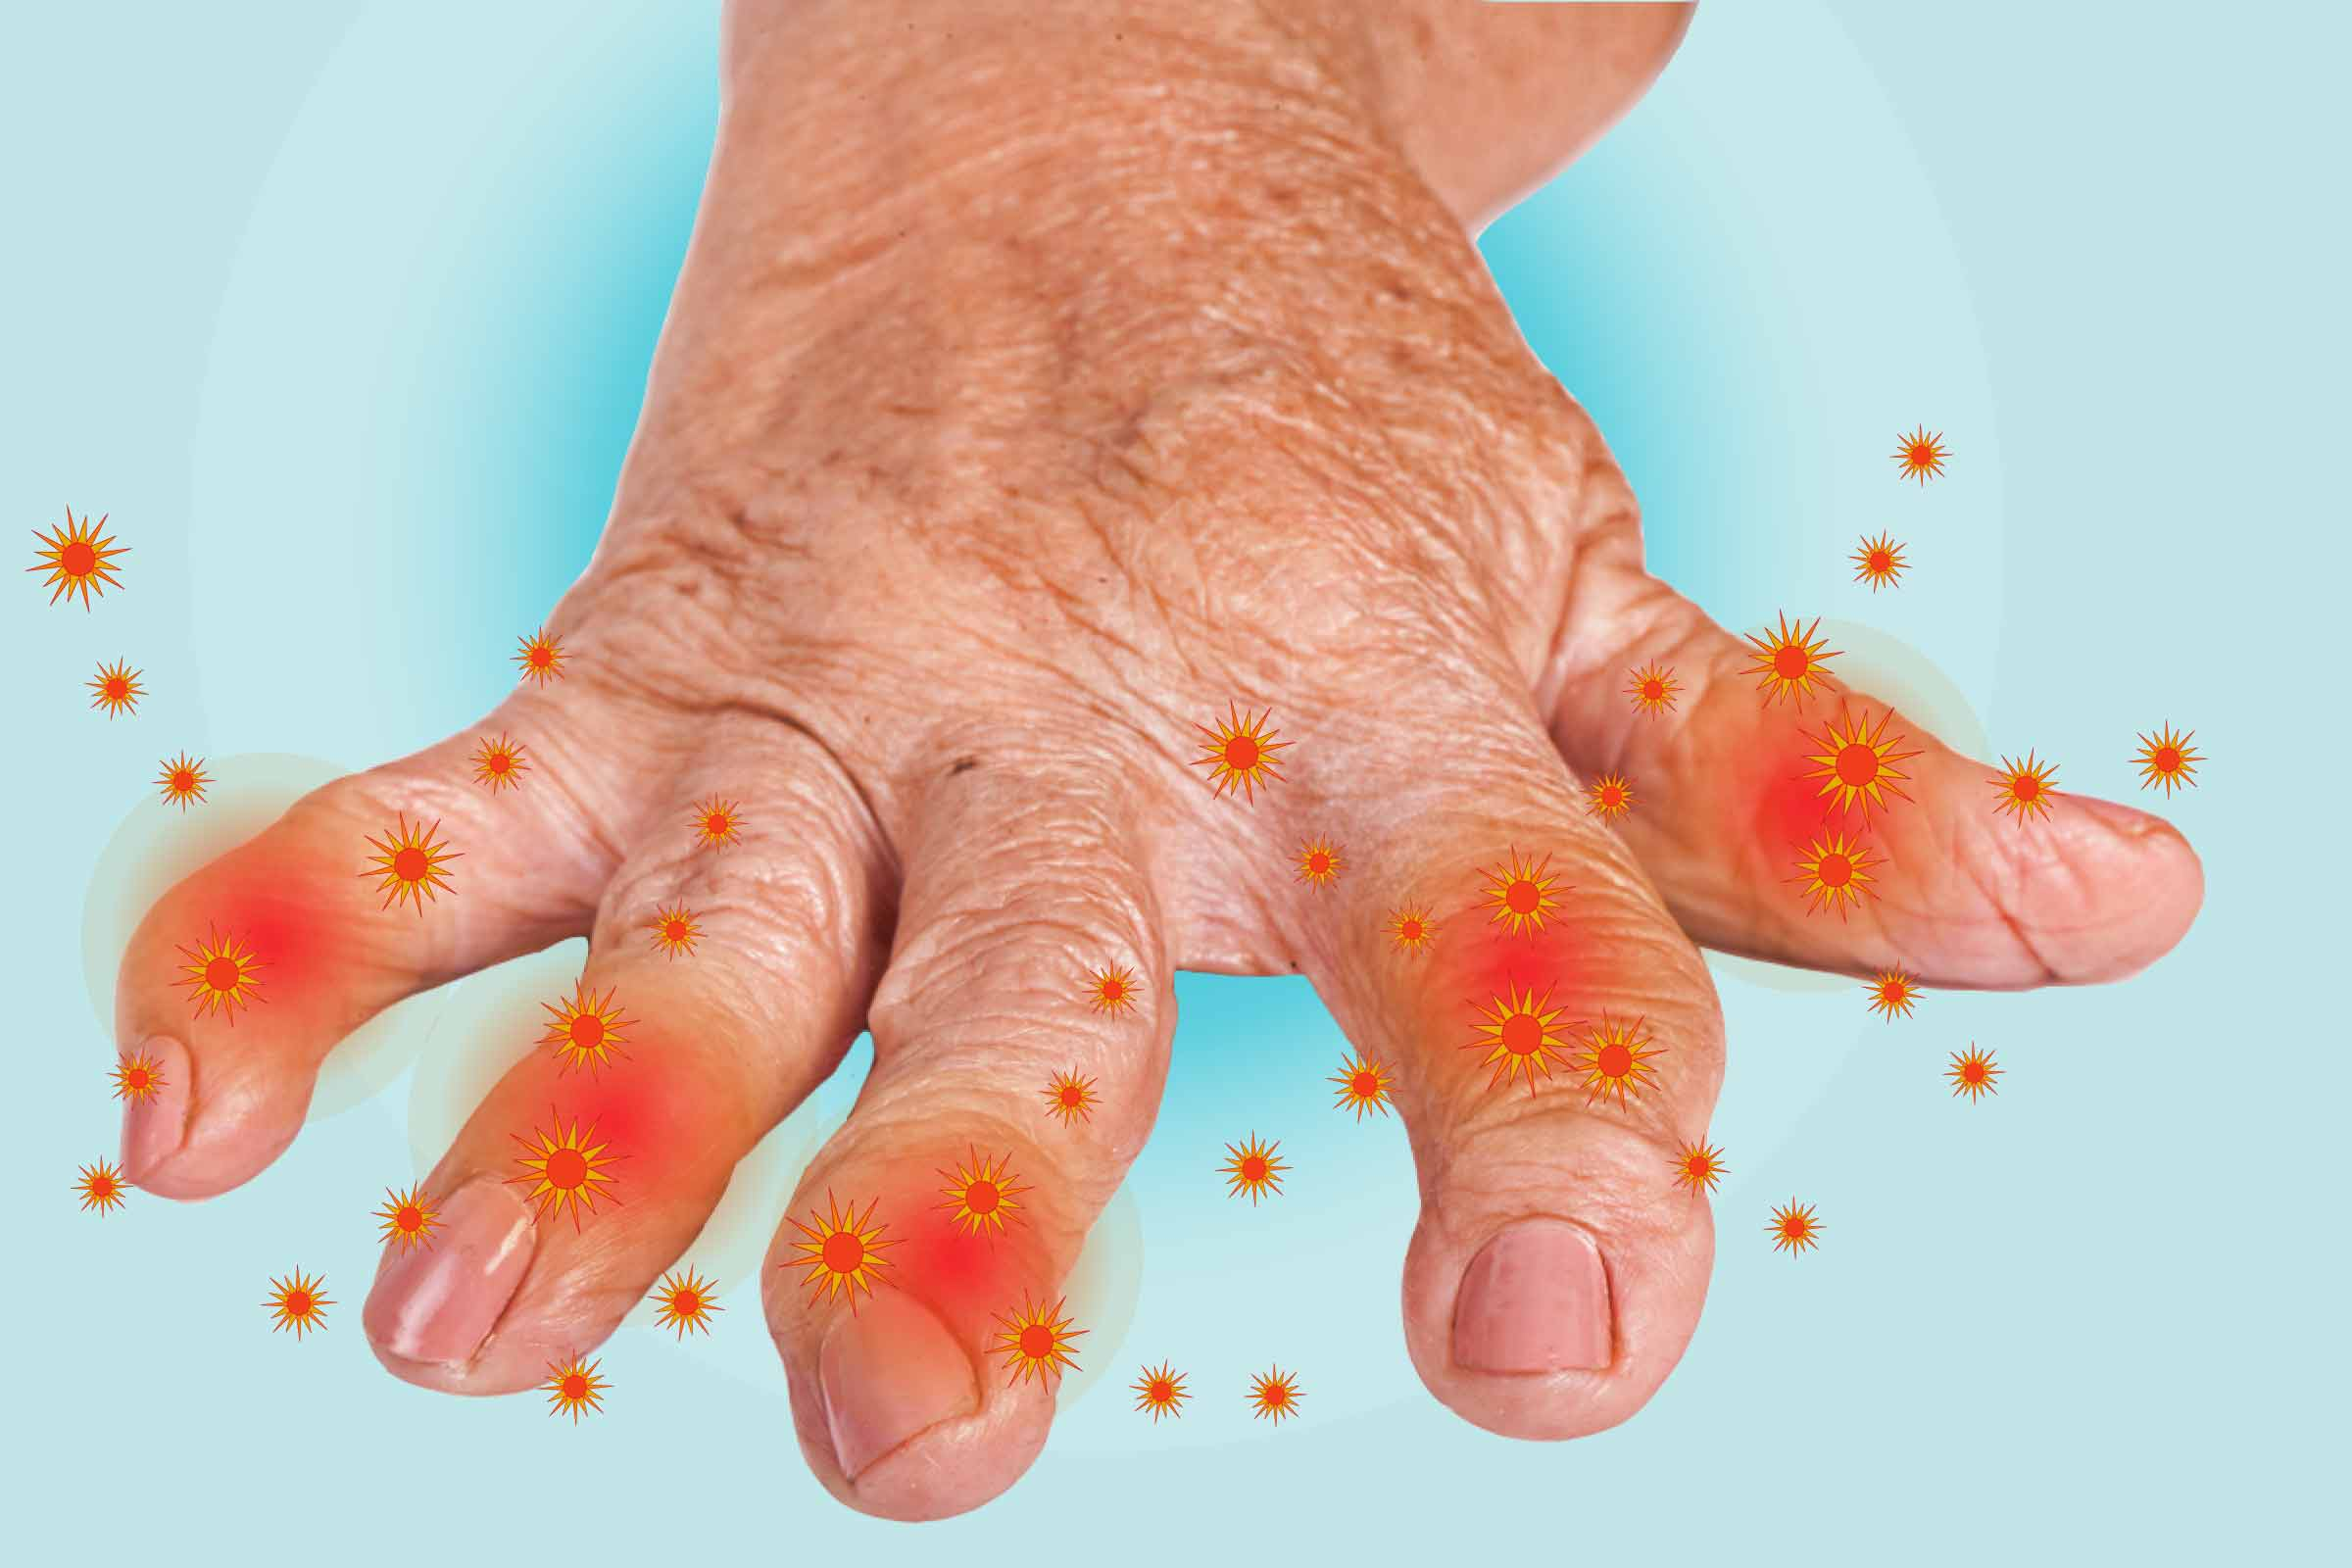 Osteoarthritis May Be As Painful And Disabling As Rheumatoid Arthritis